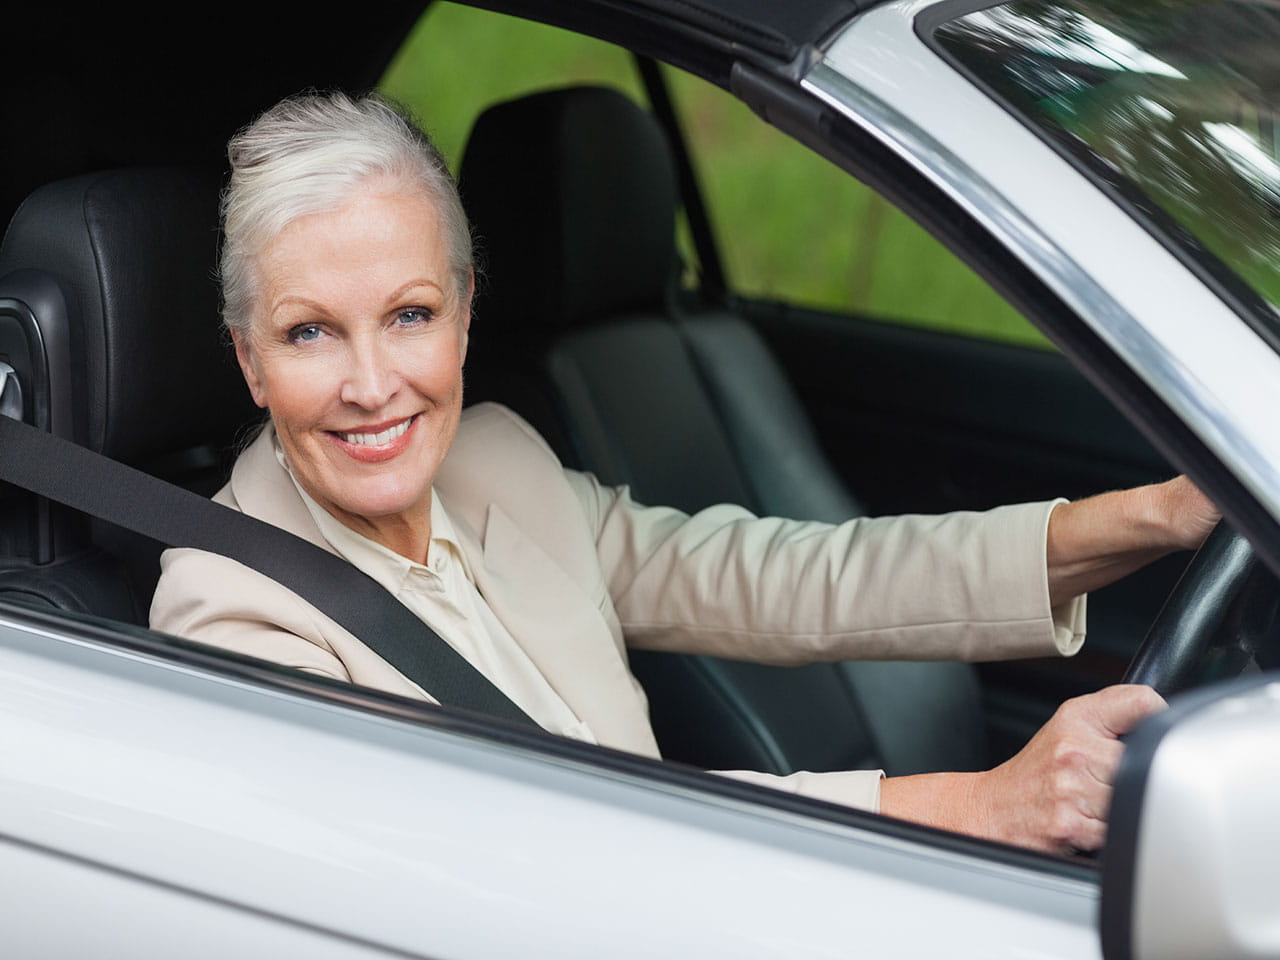 Mature lady driving a car